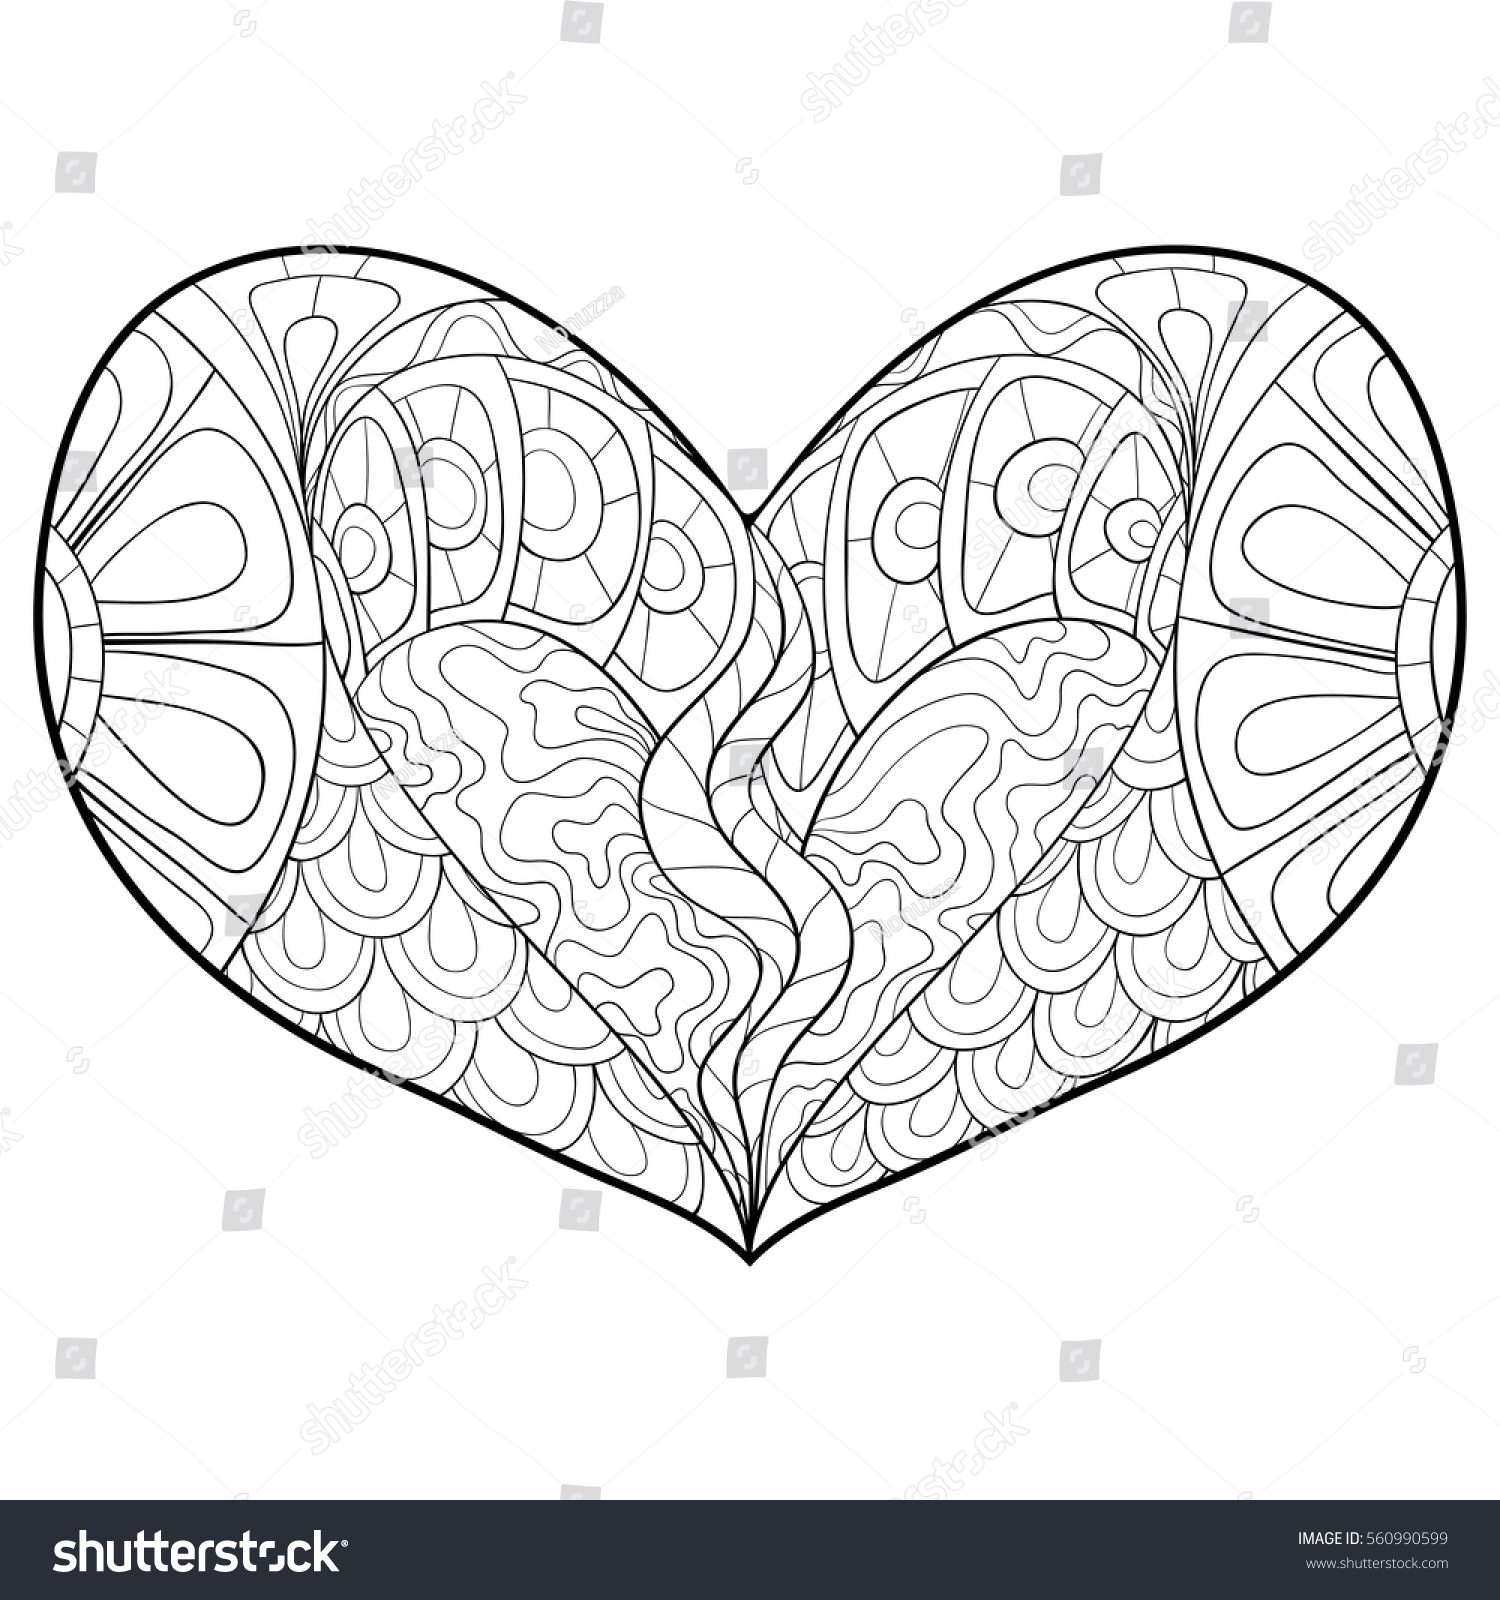 Adult Coloring Book Heart Art Stock Vector (Royalty Free) 560990599 ...